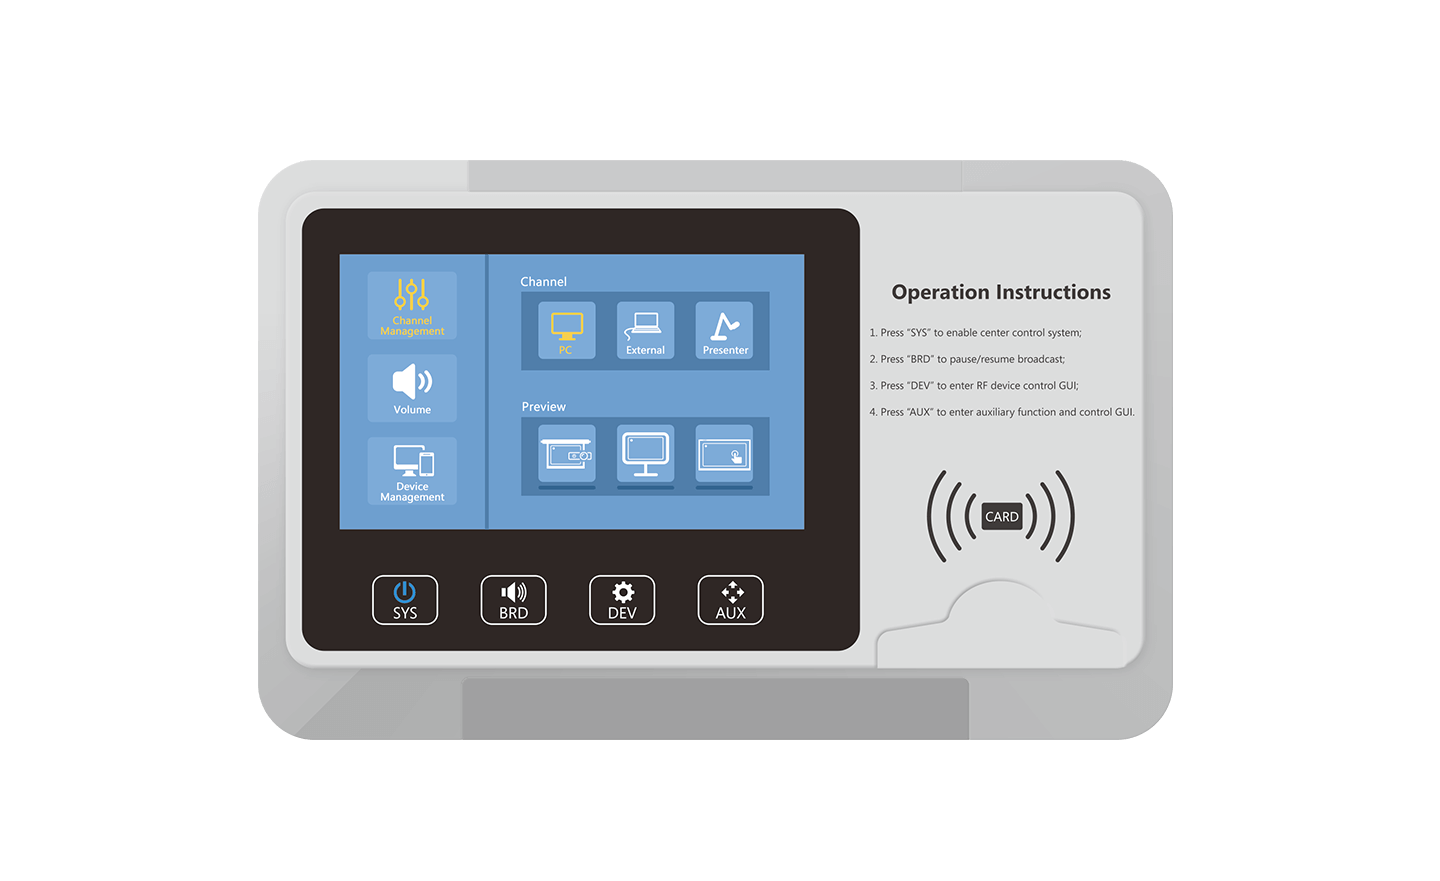 Touch Control Panel, school device management